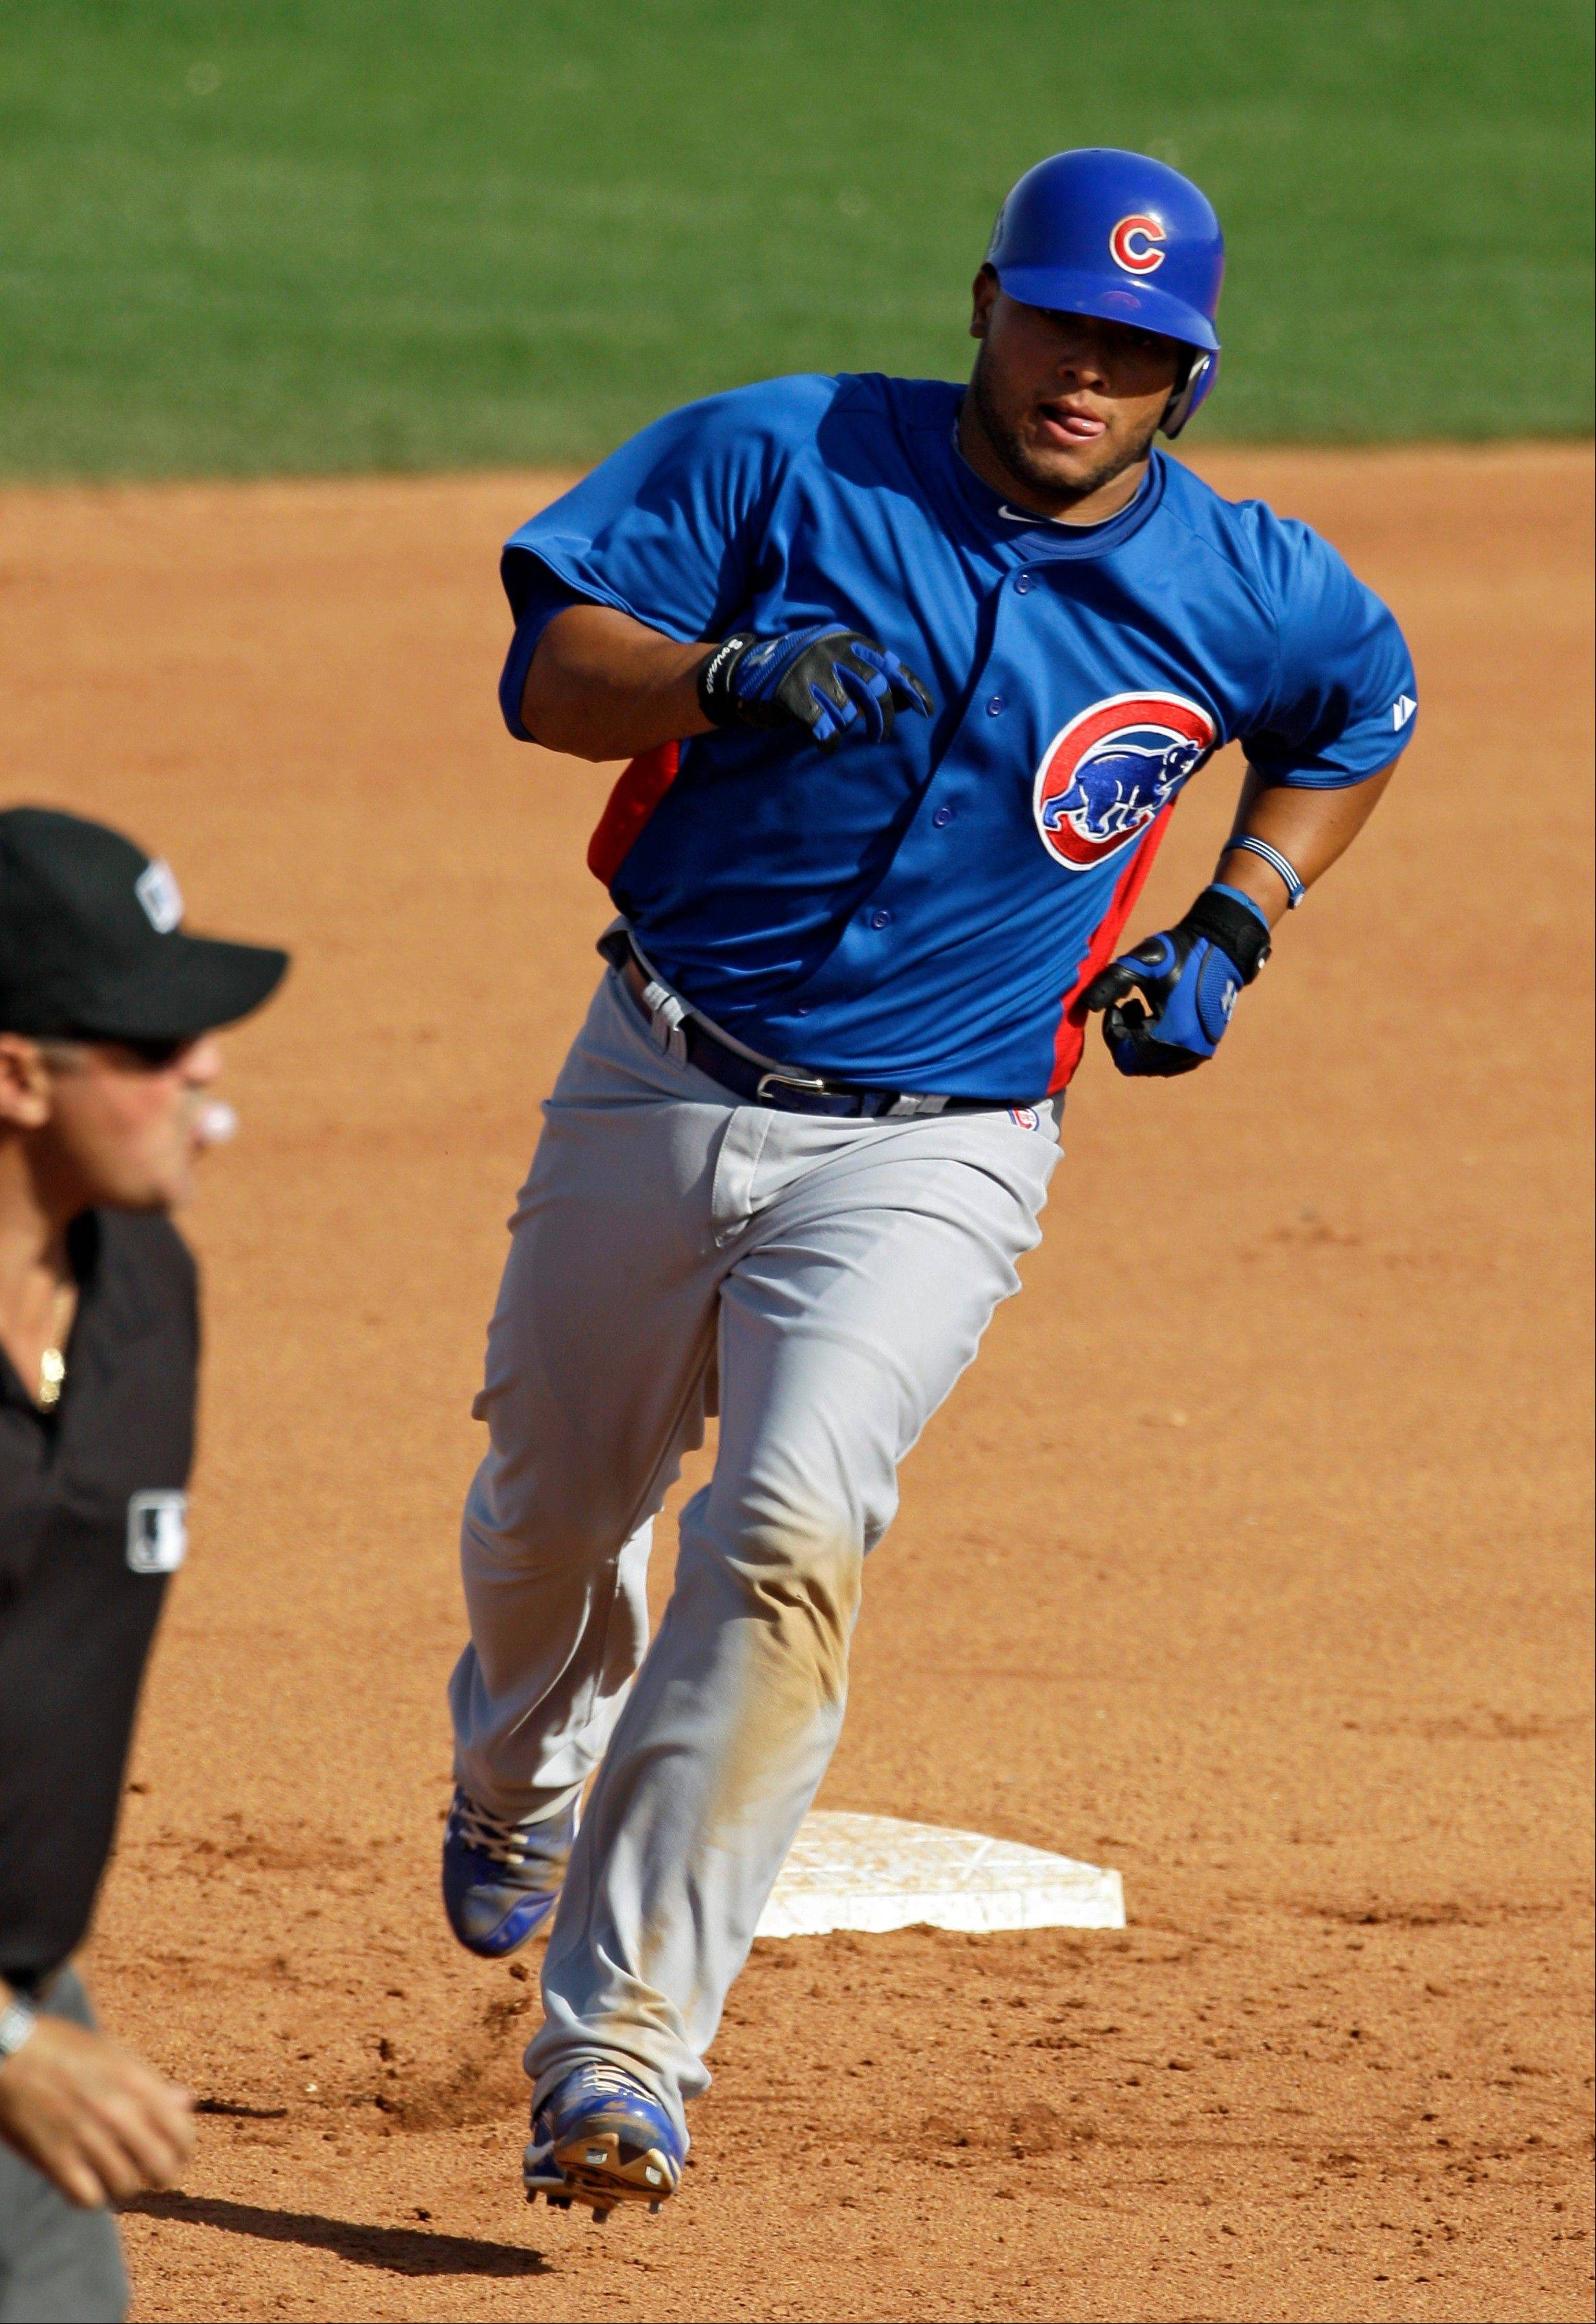 Welington Castillo has the inside track to be the Cubs' starting catcher this season.